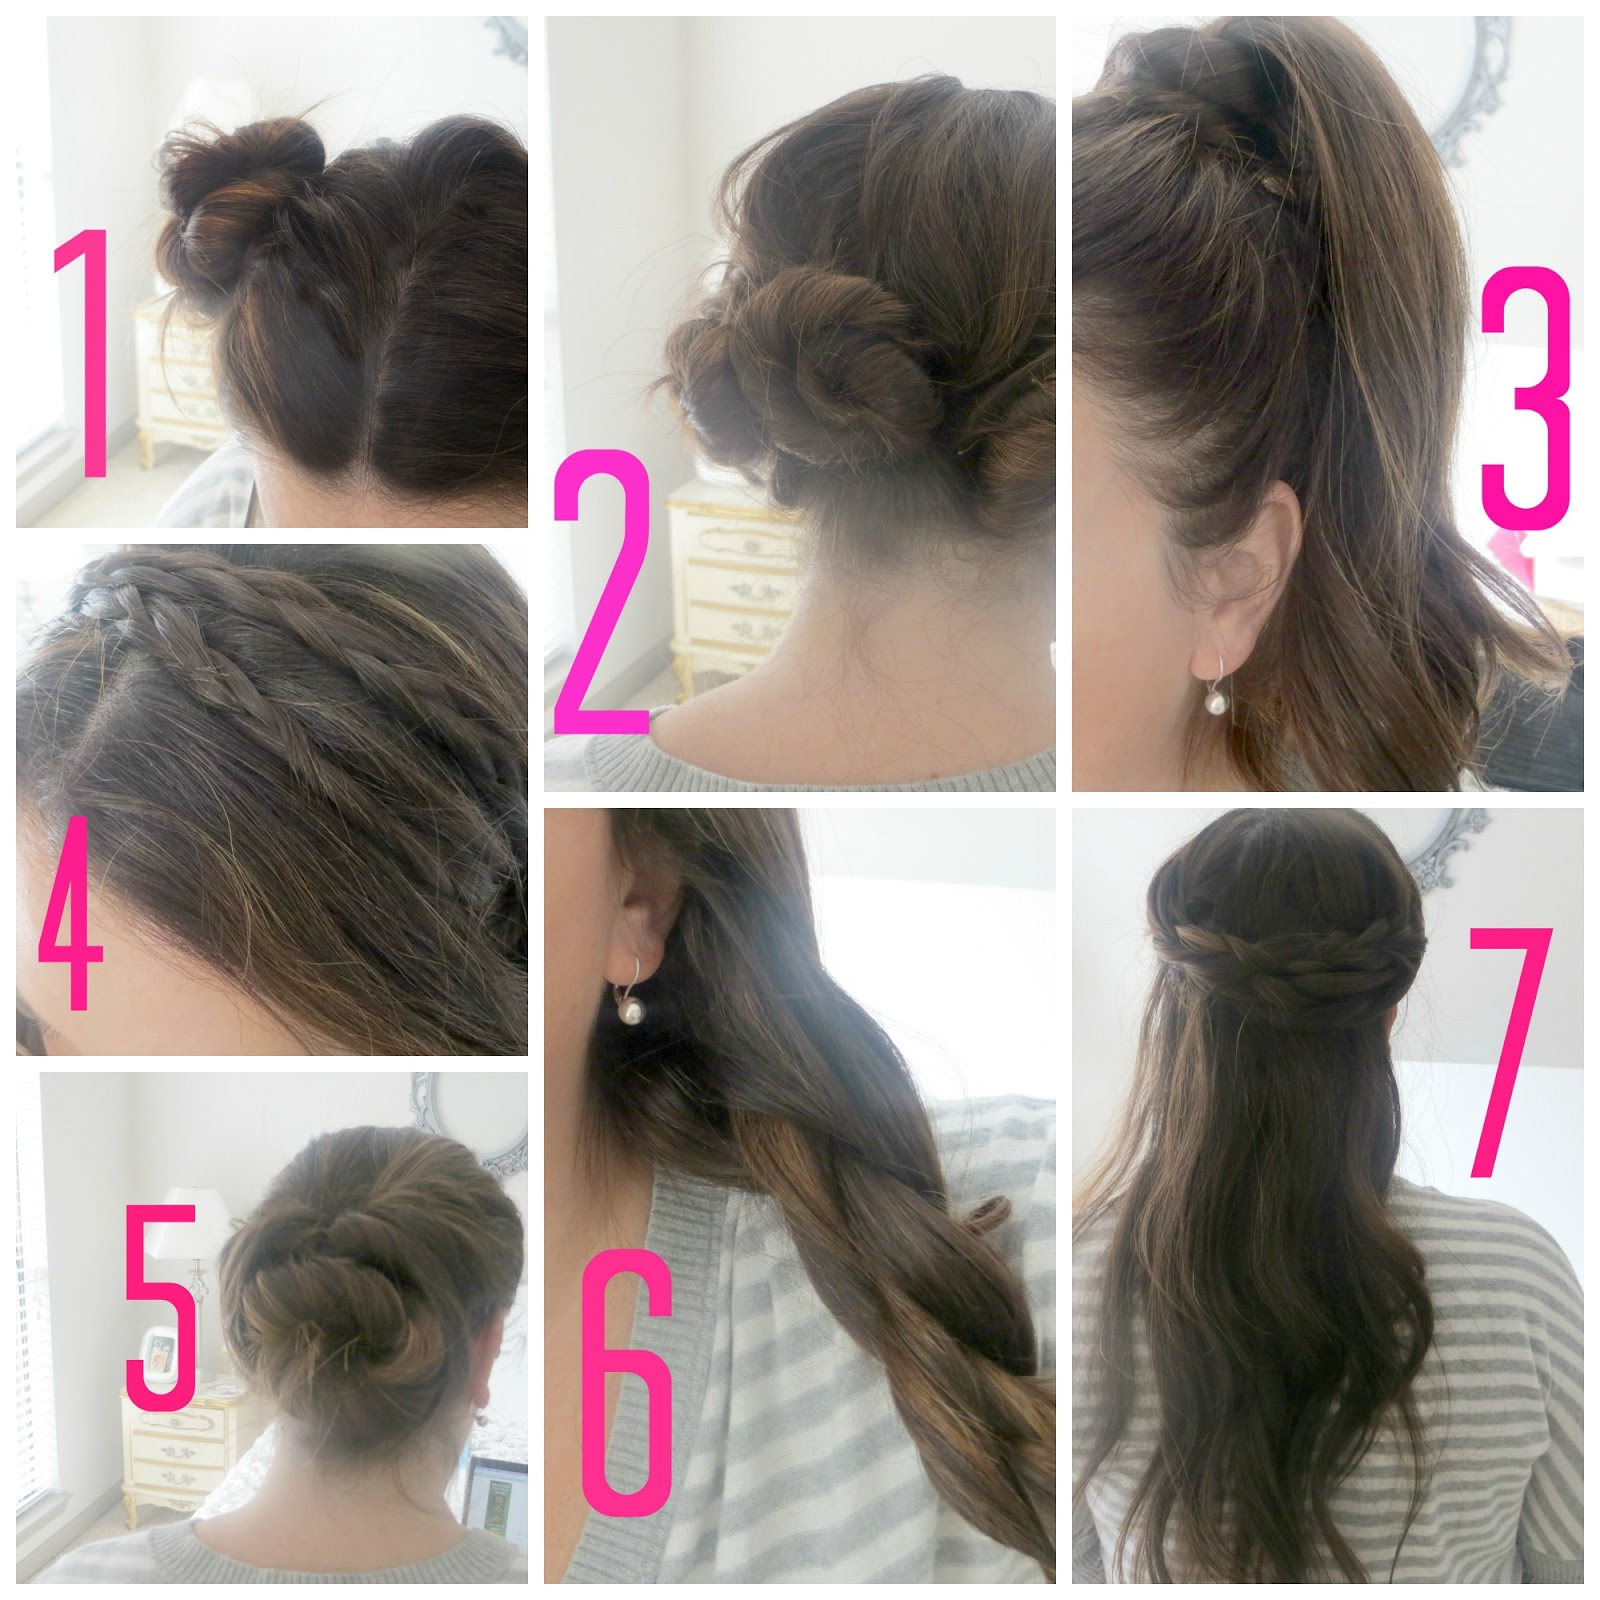 Easy Hairstyles Step by Step Instructions